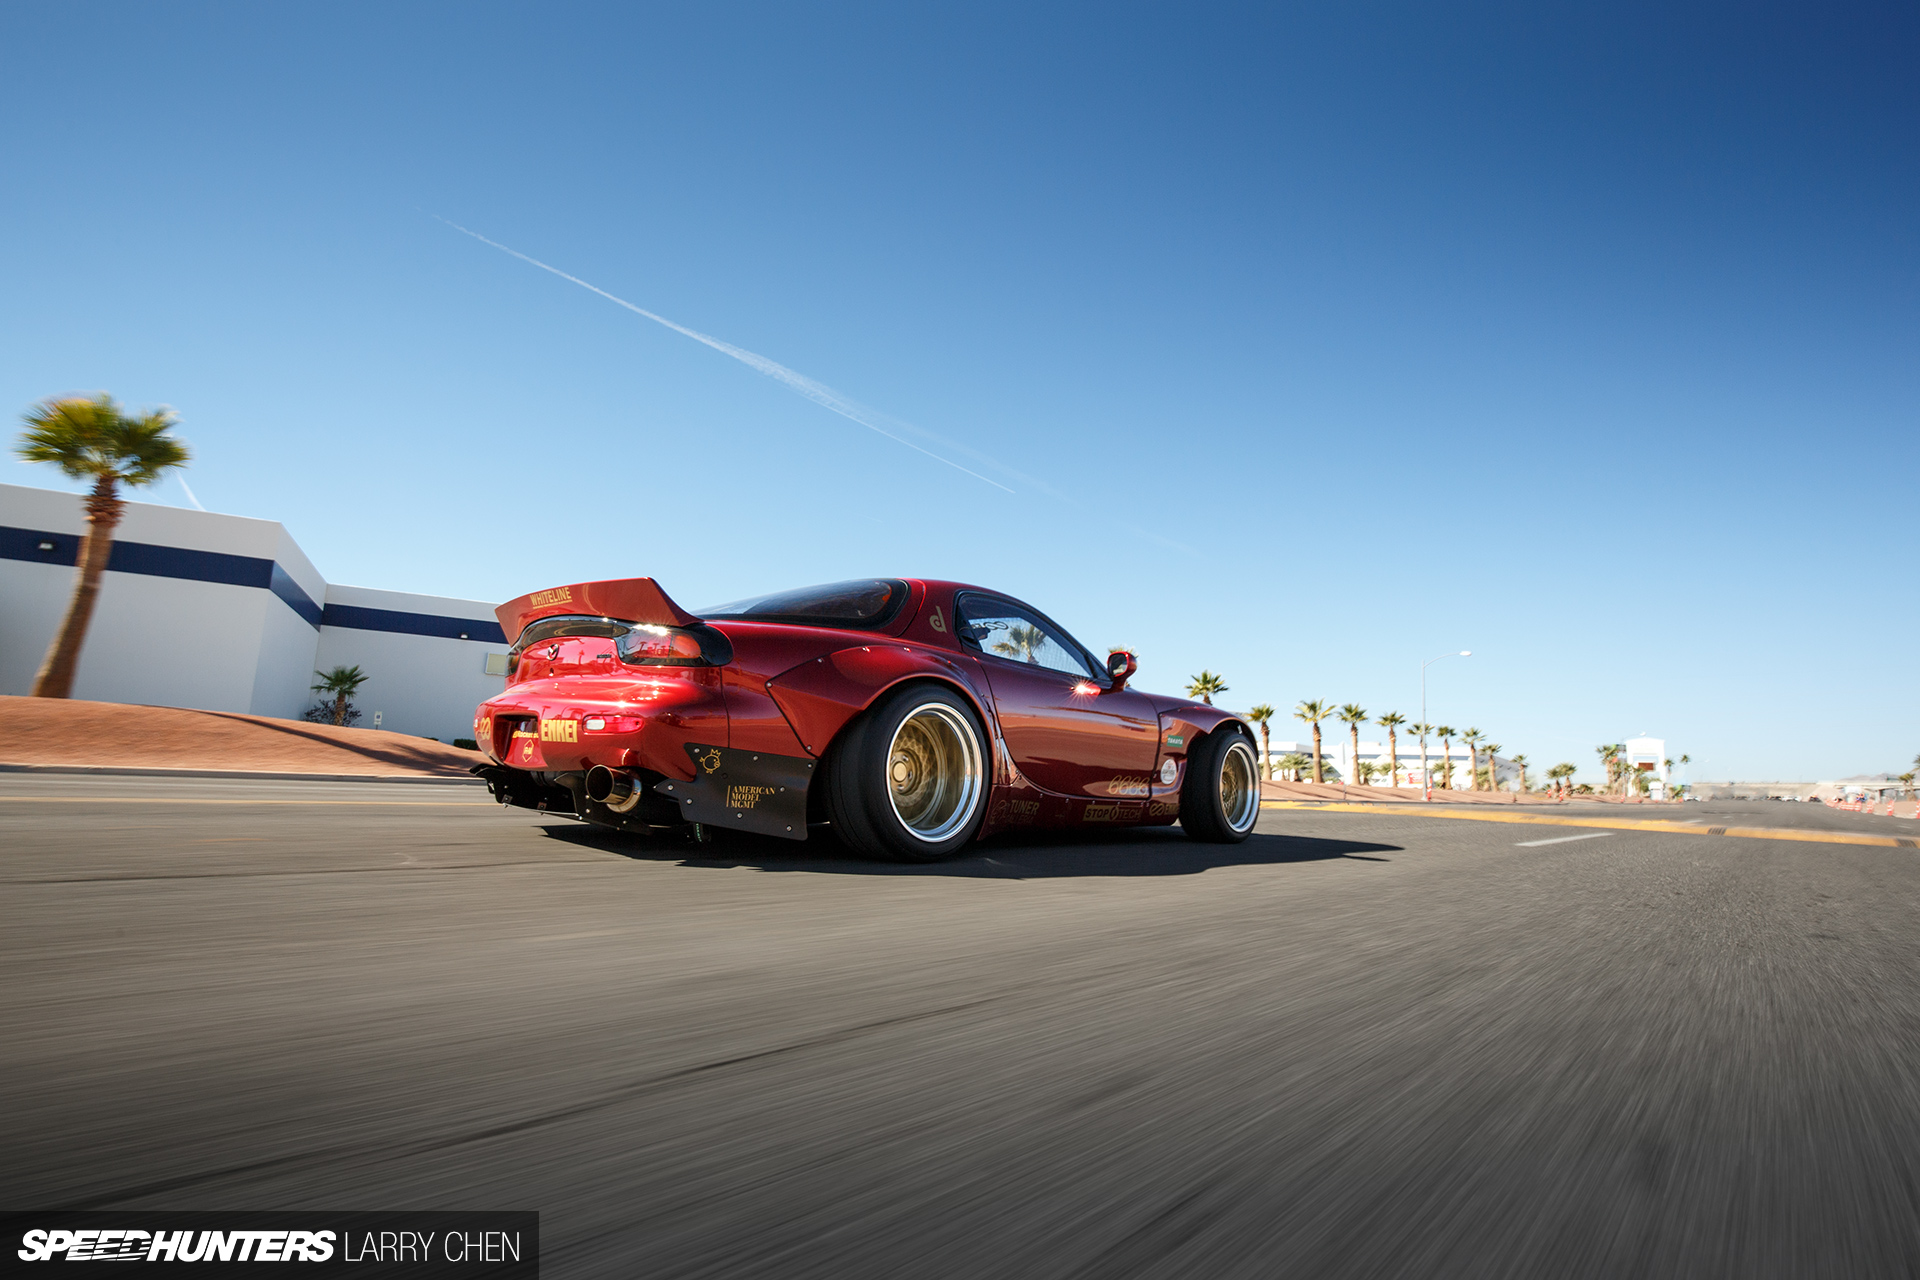 Hd Drift Car Wallpapers 1920x1080 Wide Body Dreaming The Rocket Bunny Rx 7 Speedhunters